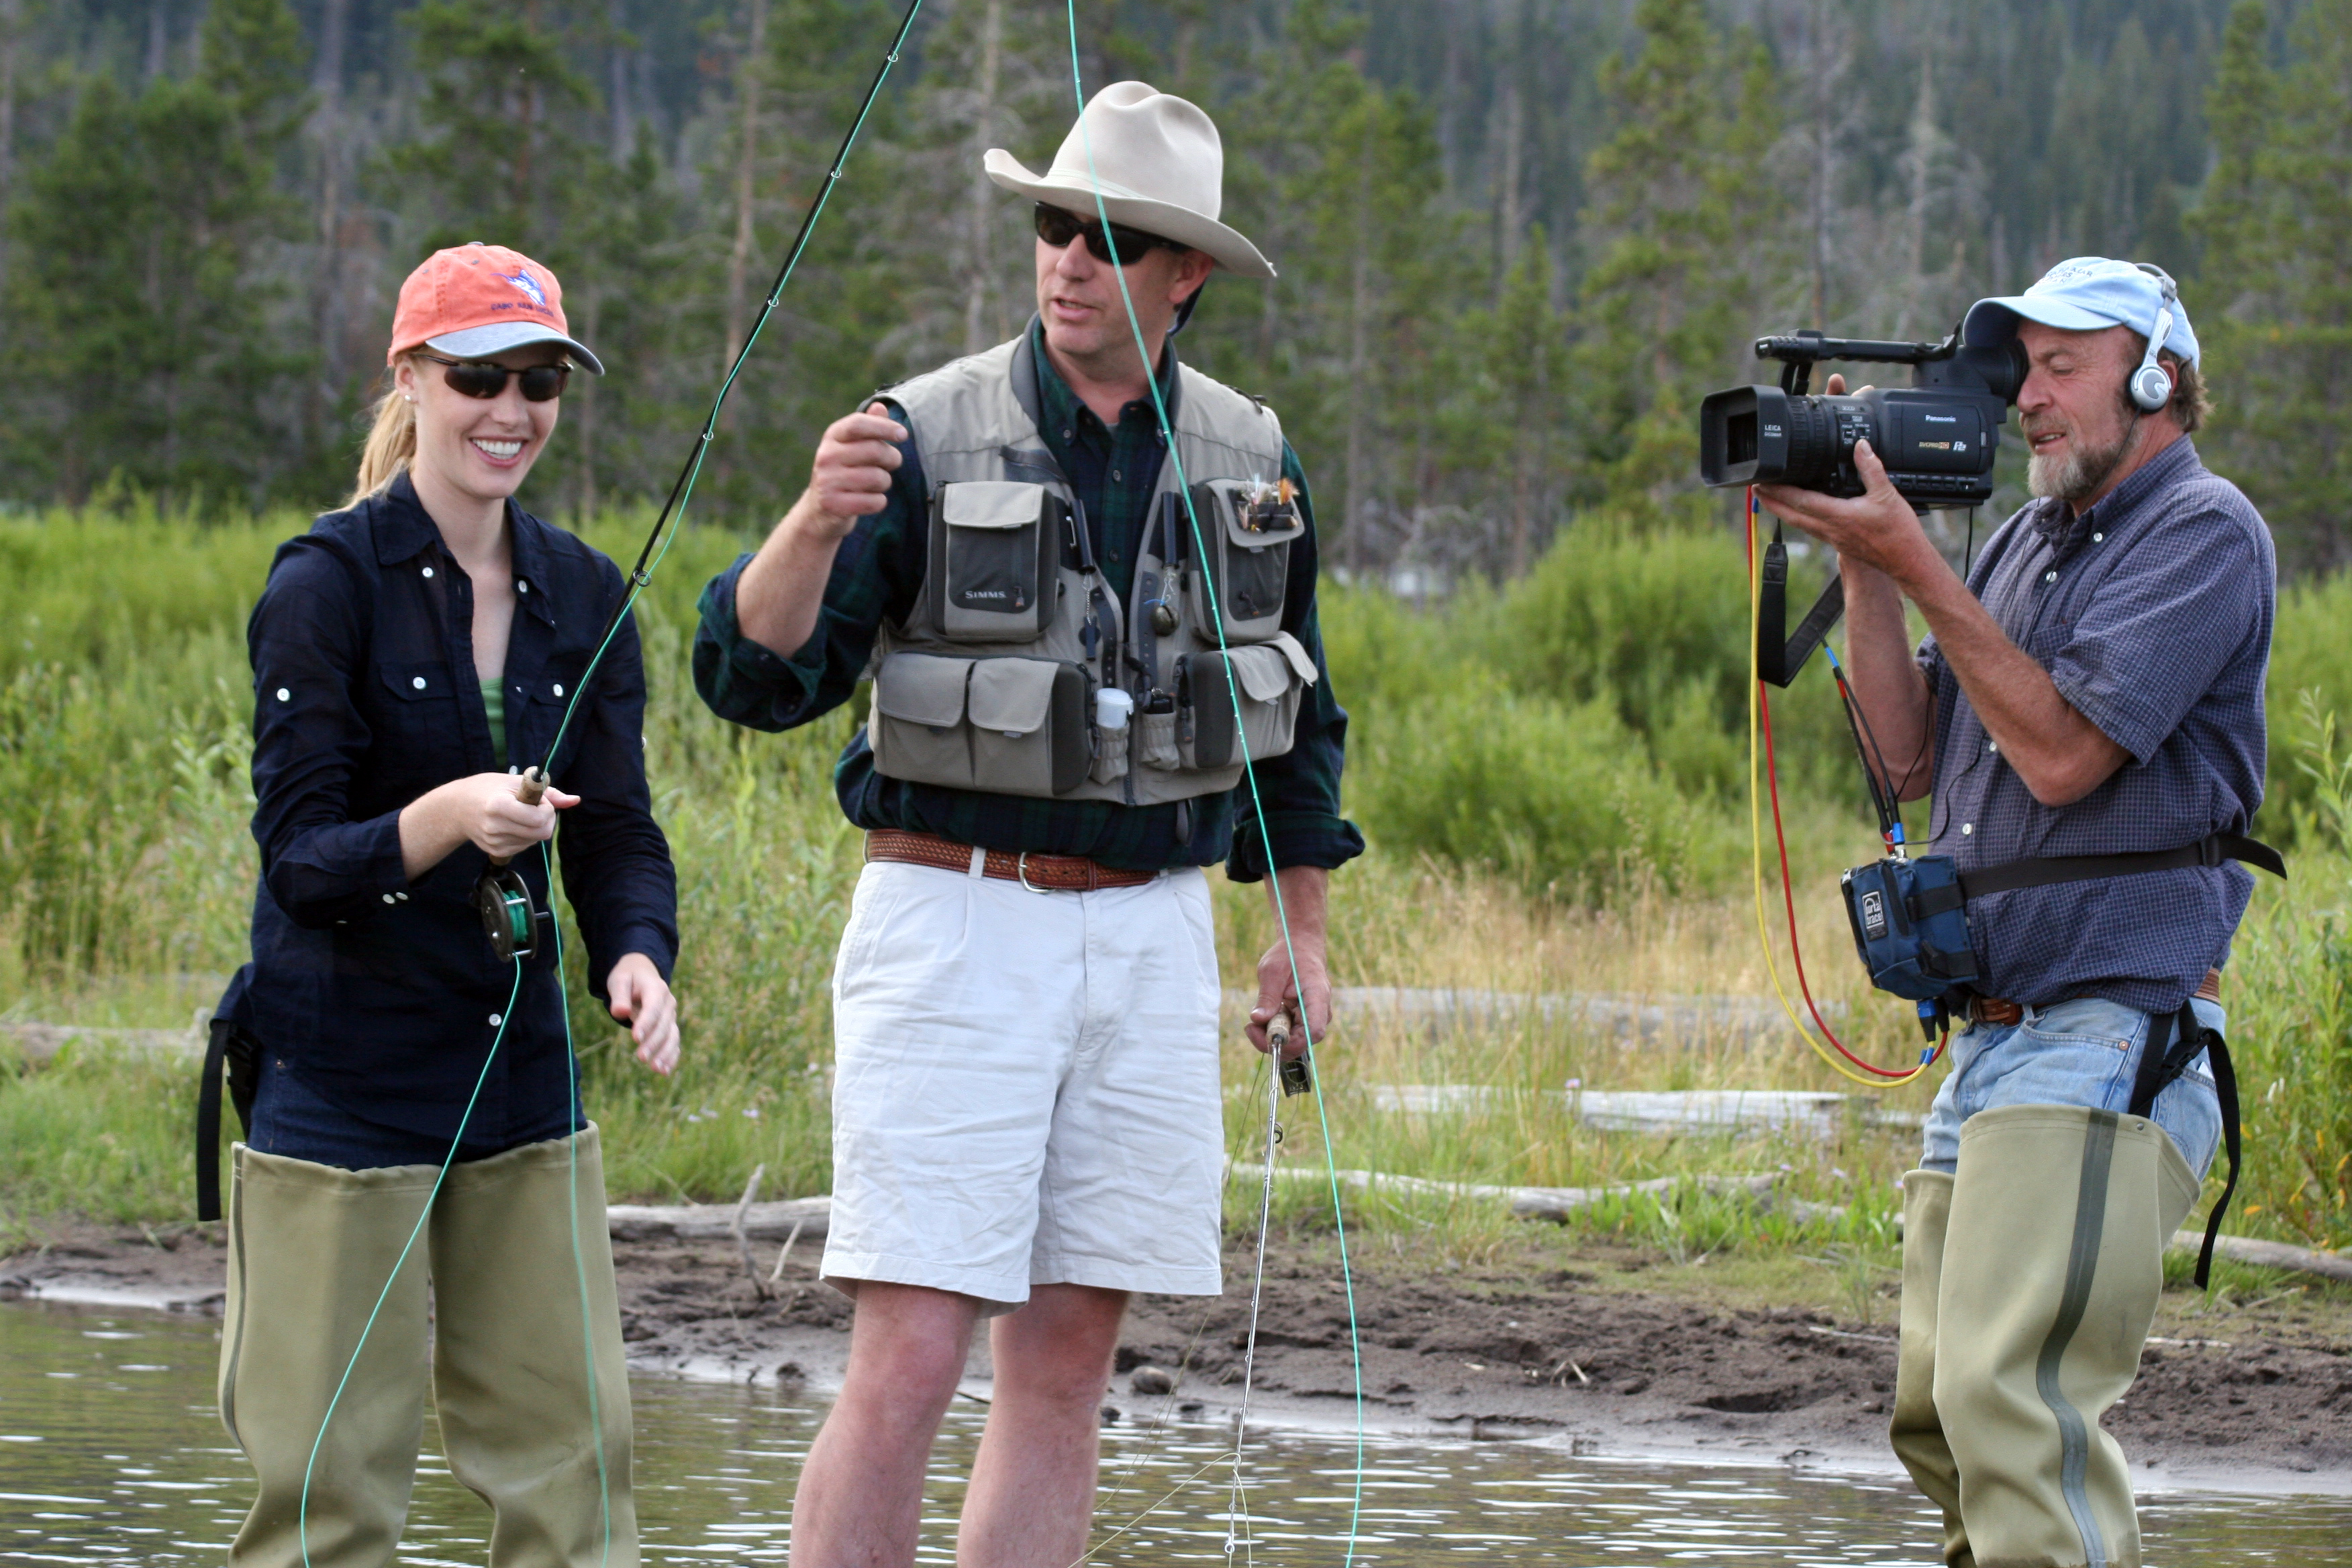 Darley Newman learns fly-fishing from Phil Dudley at T Cross Ranch outside of Dubois, Wyoming during the filming of Equitrekking Wyoming, a half hour high definition episode.